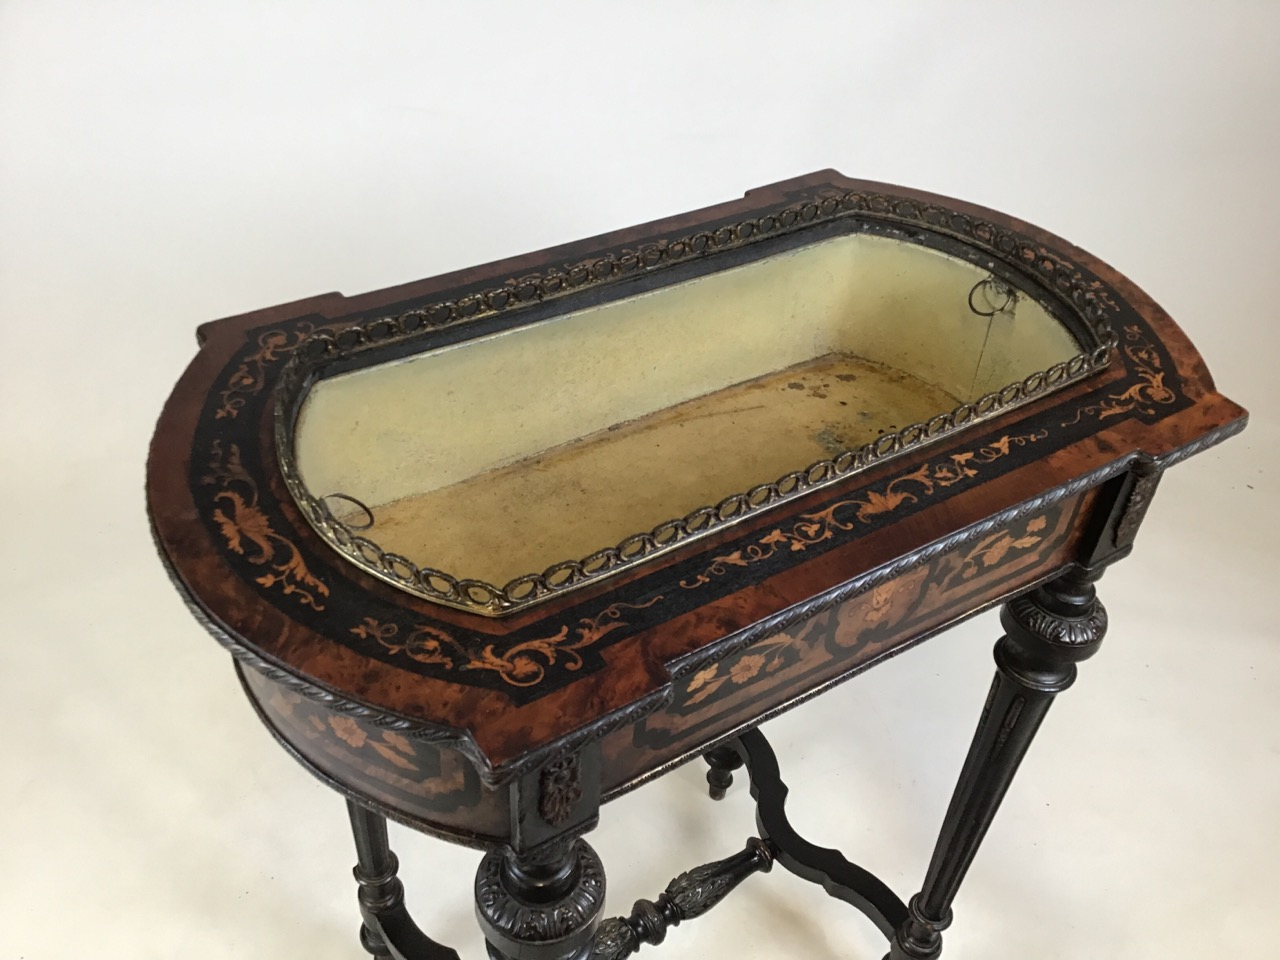 A 19th Century Dutch marquetry inlaid mahogany side table with tin lined lidded top possibly - Image 3 of 8